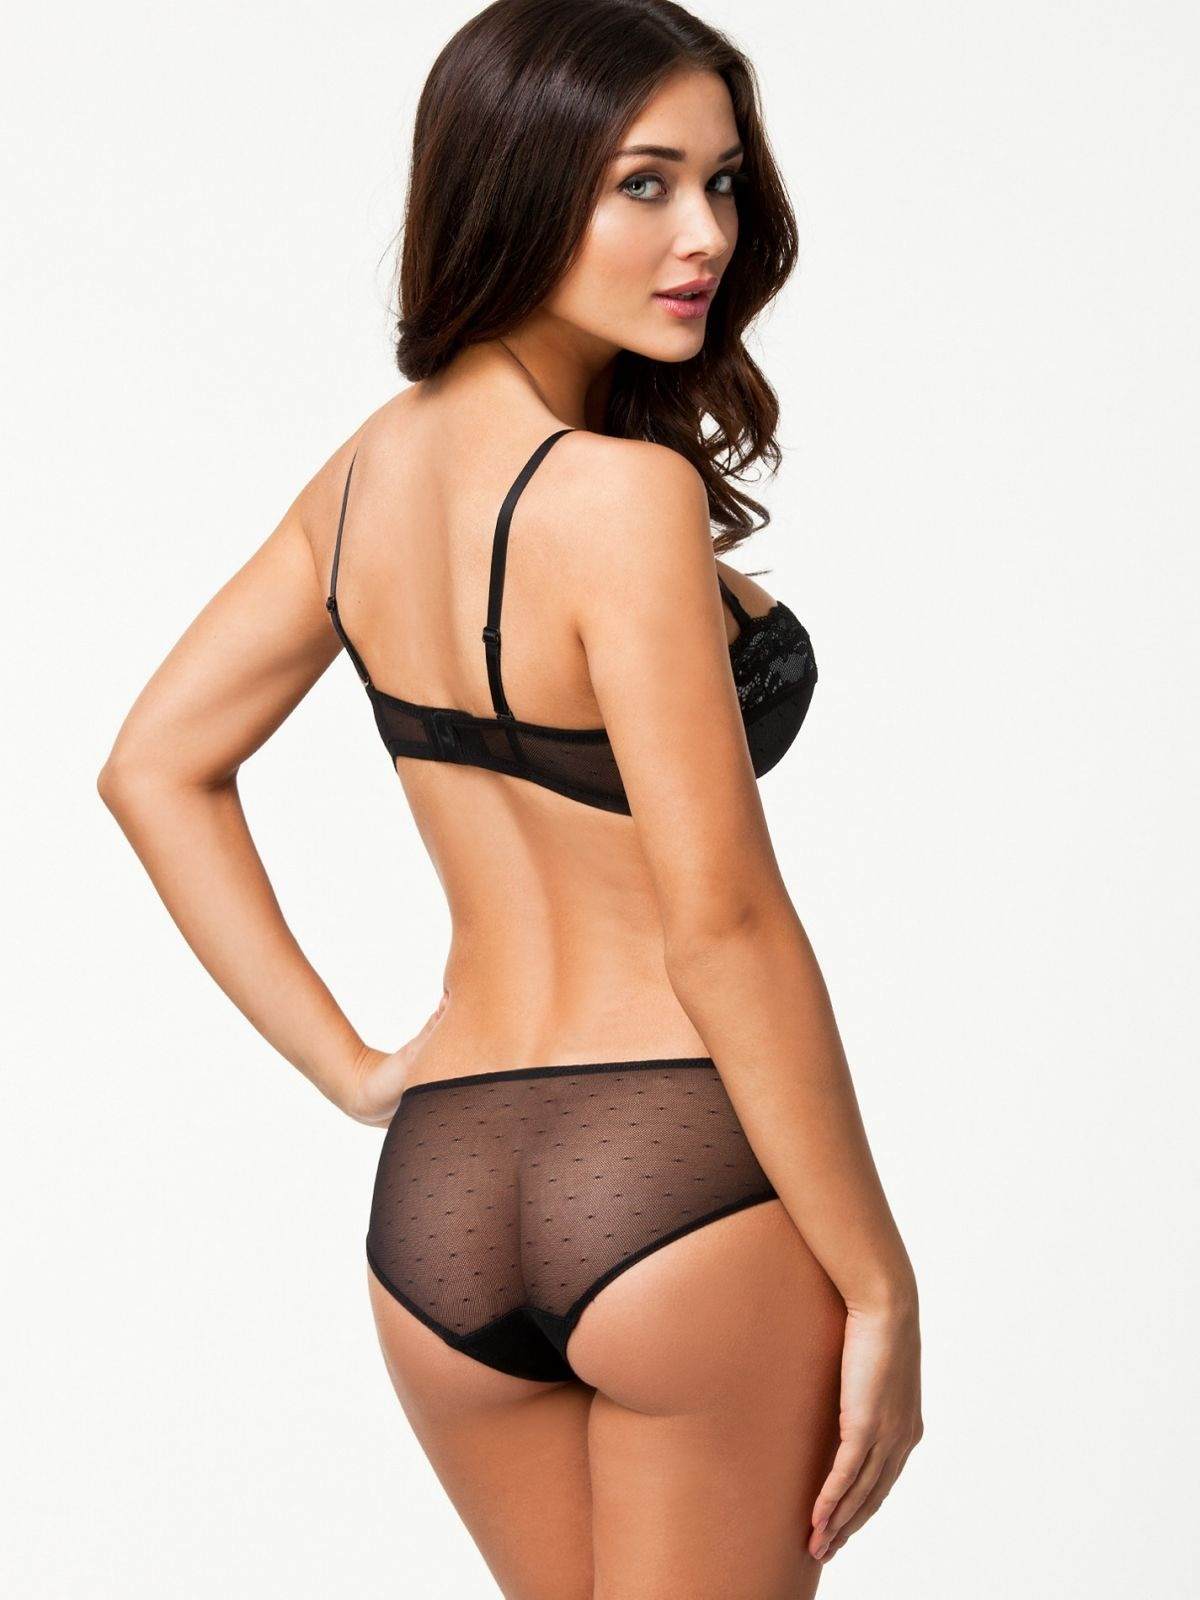 Amy Jackson Promoshoot For Nelly Swimwear Lingerie